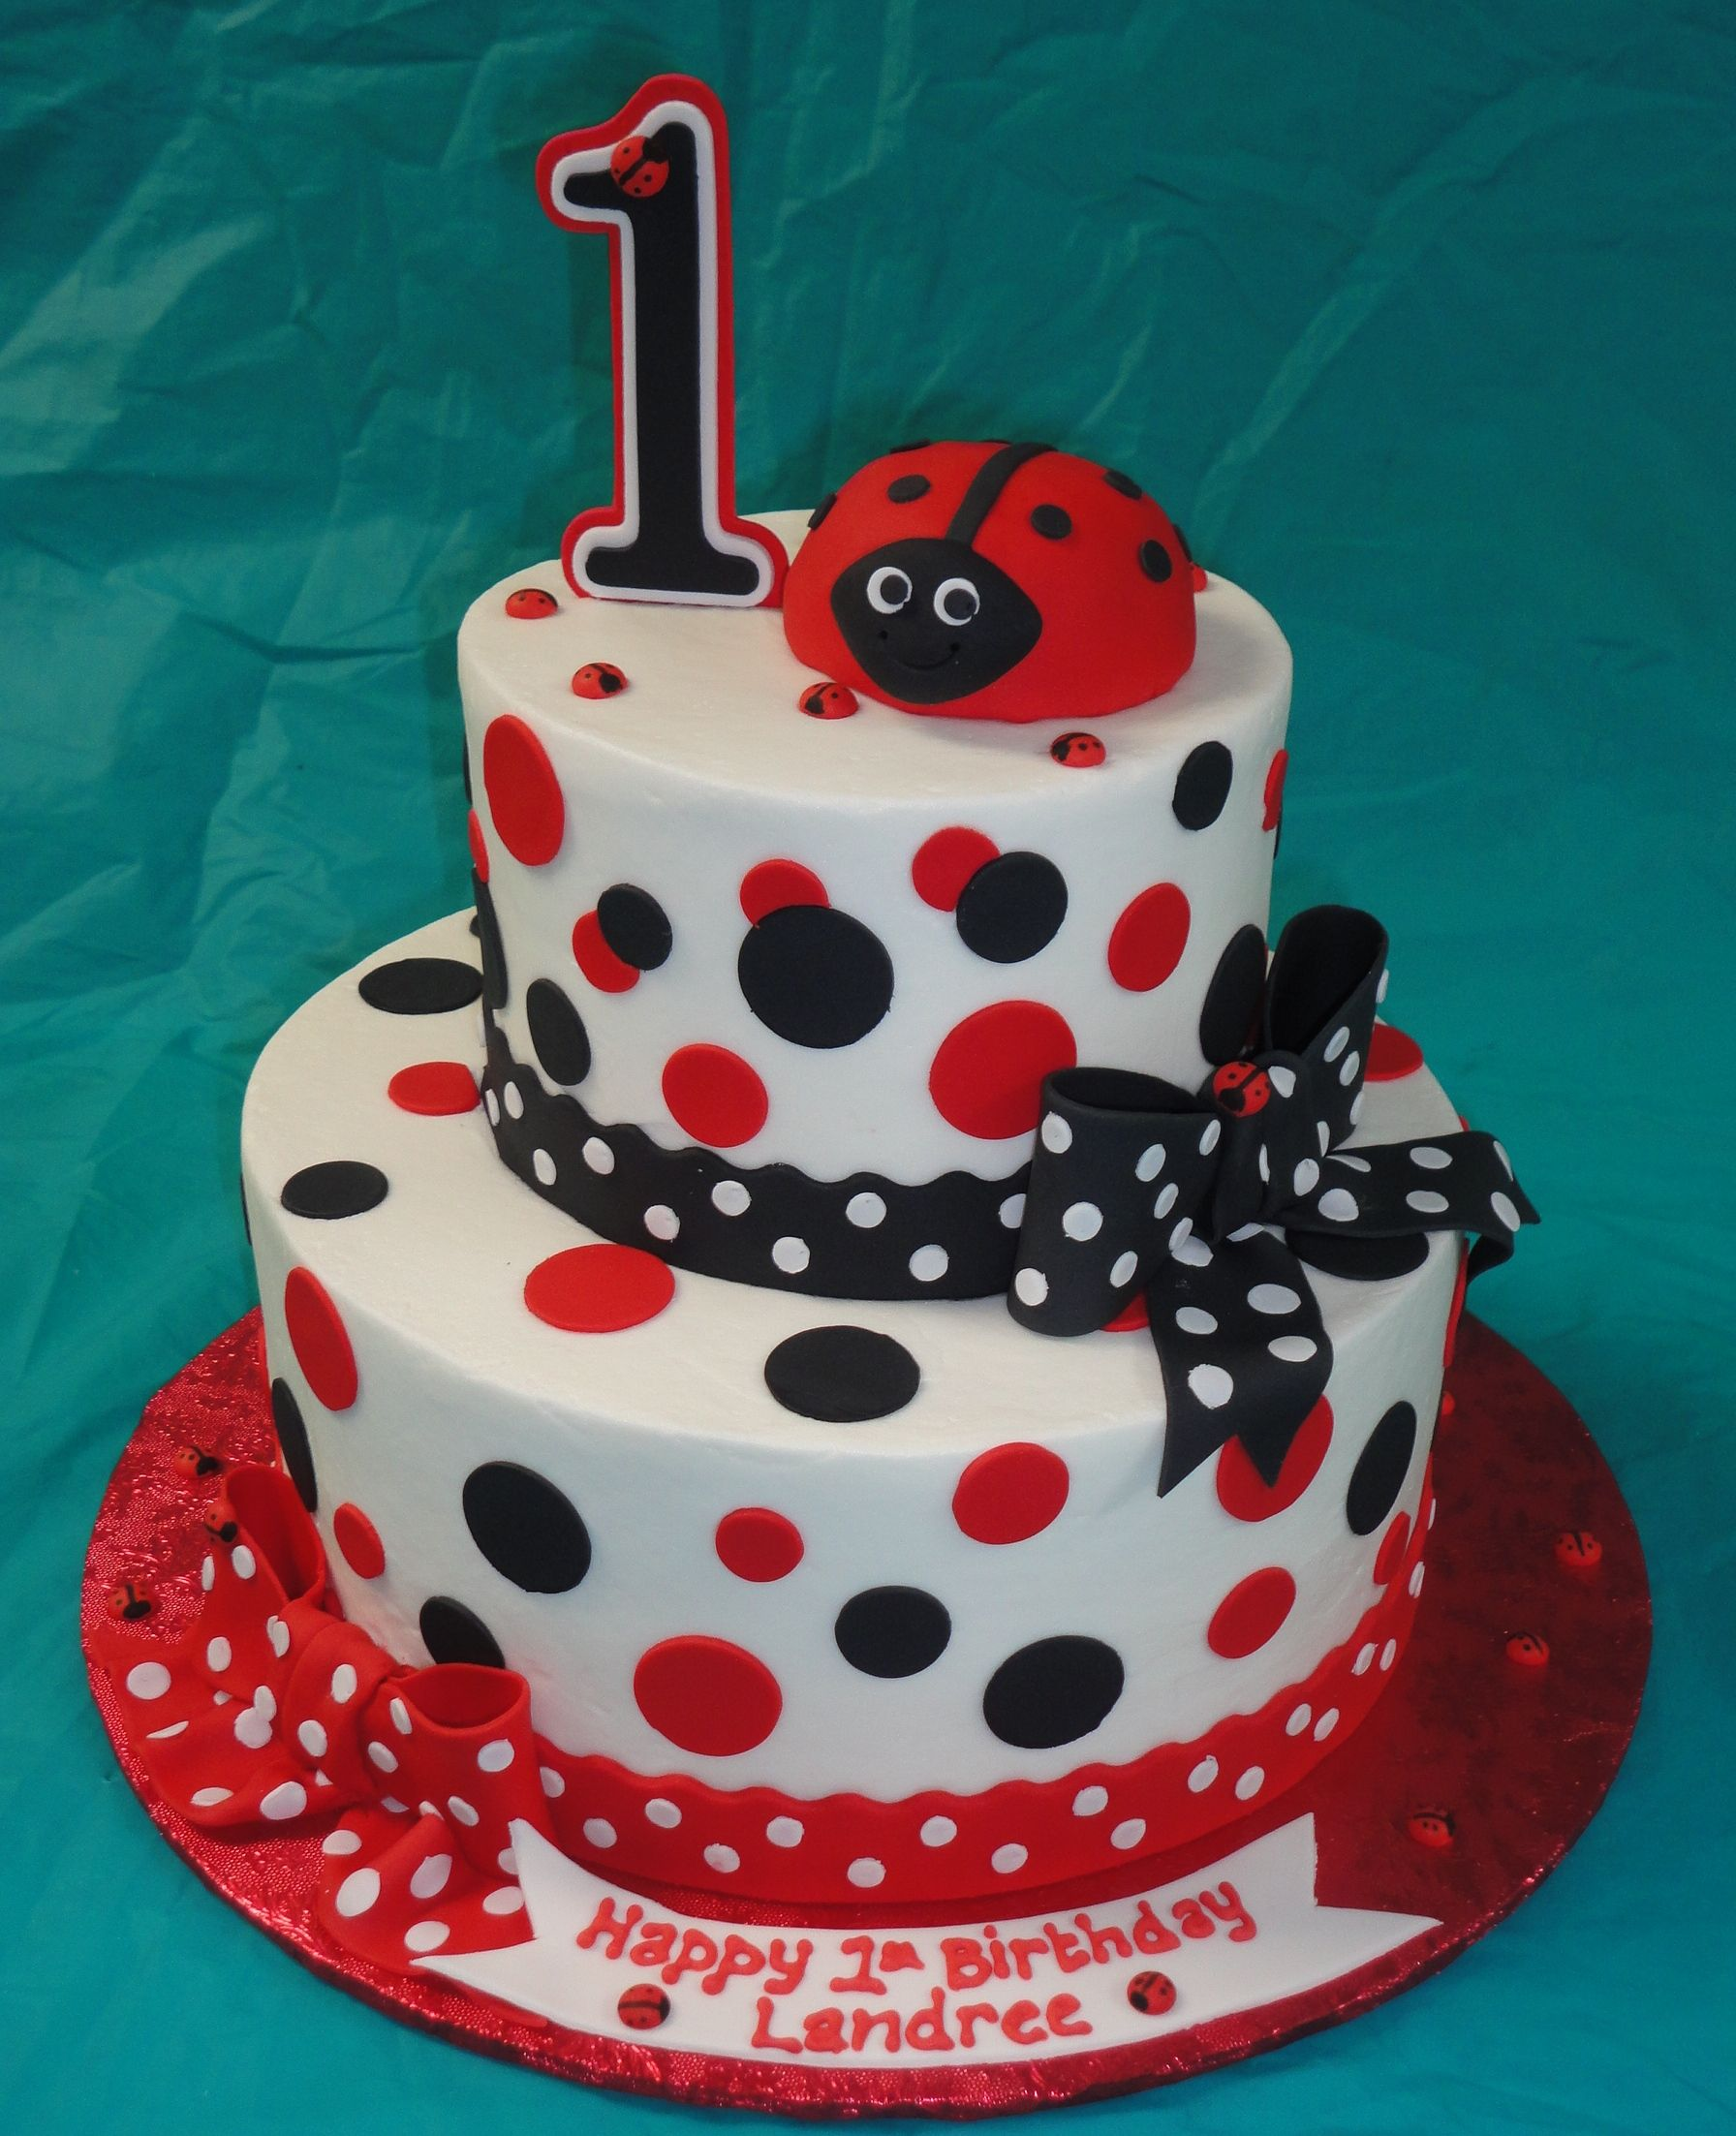 ladybug cakes on pinterest ladybug cupcakes fondant and hello kitty